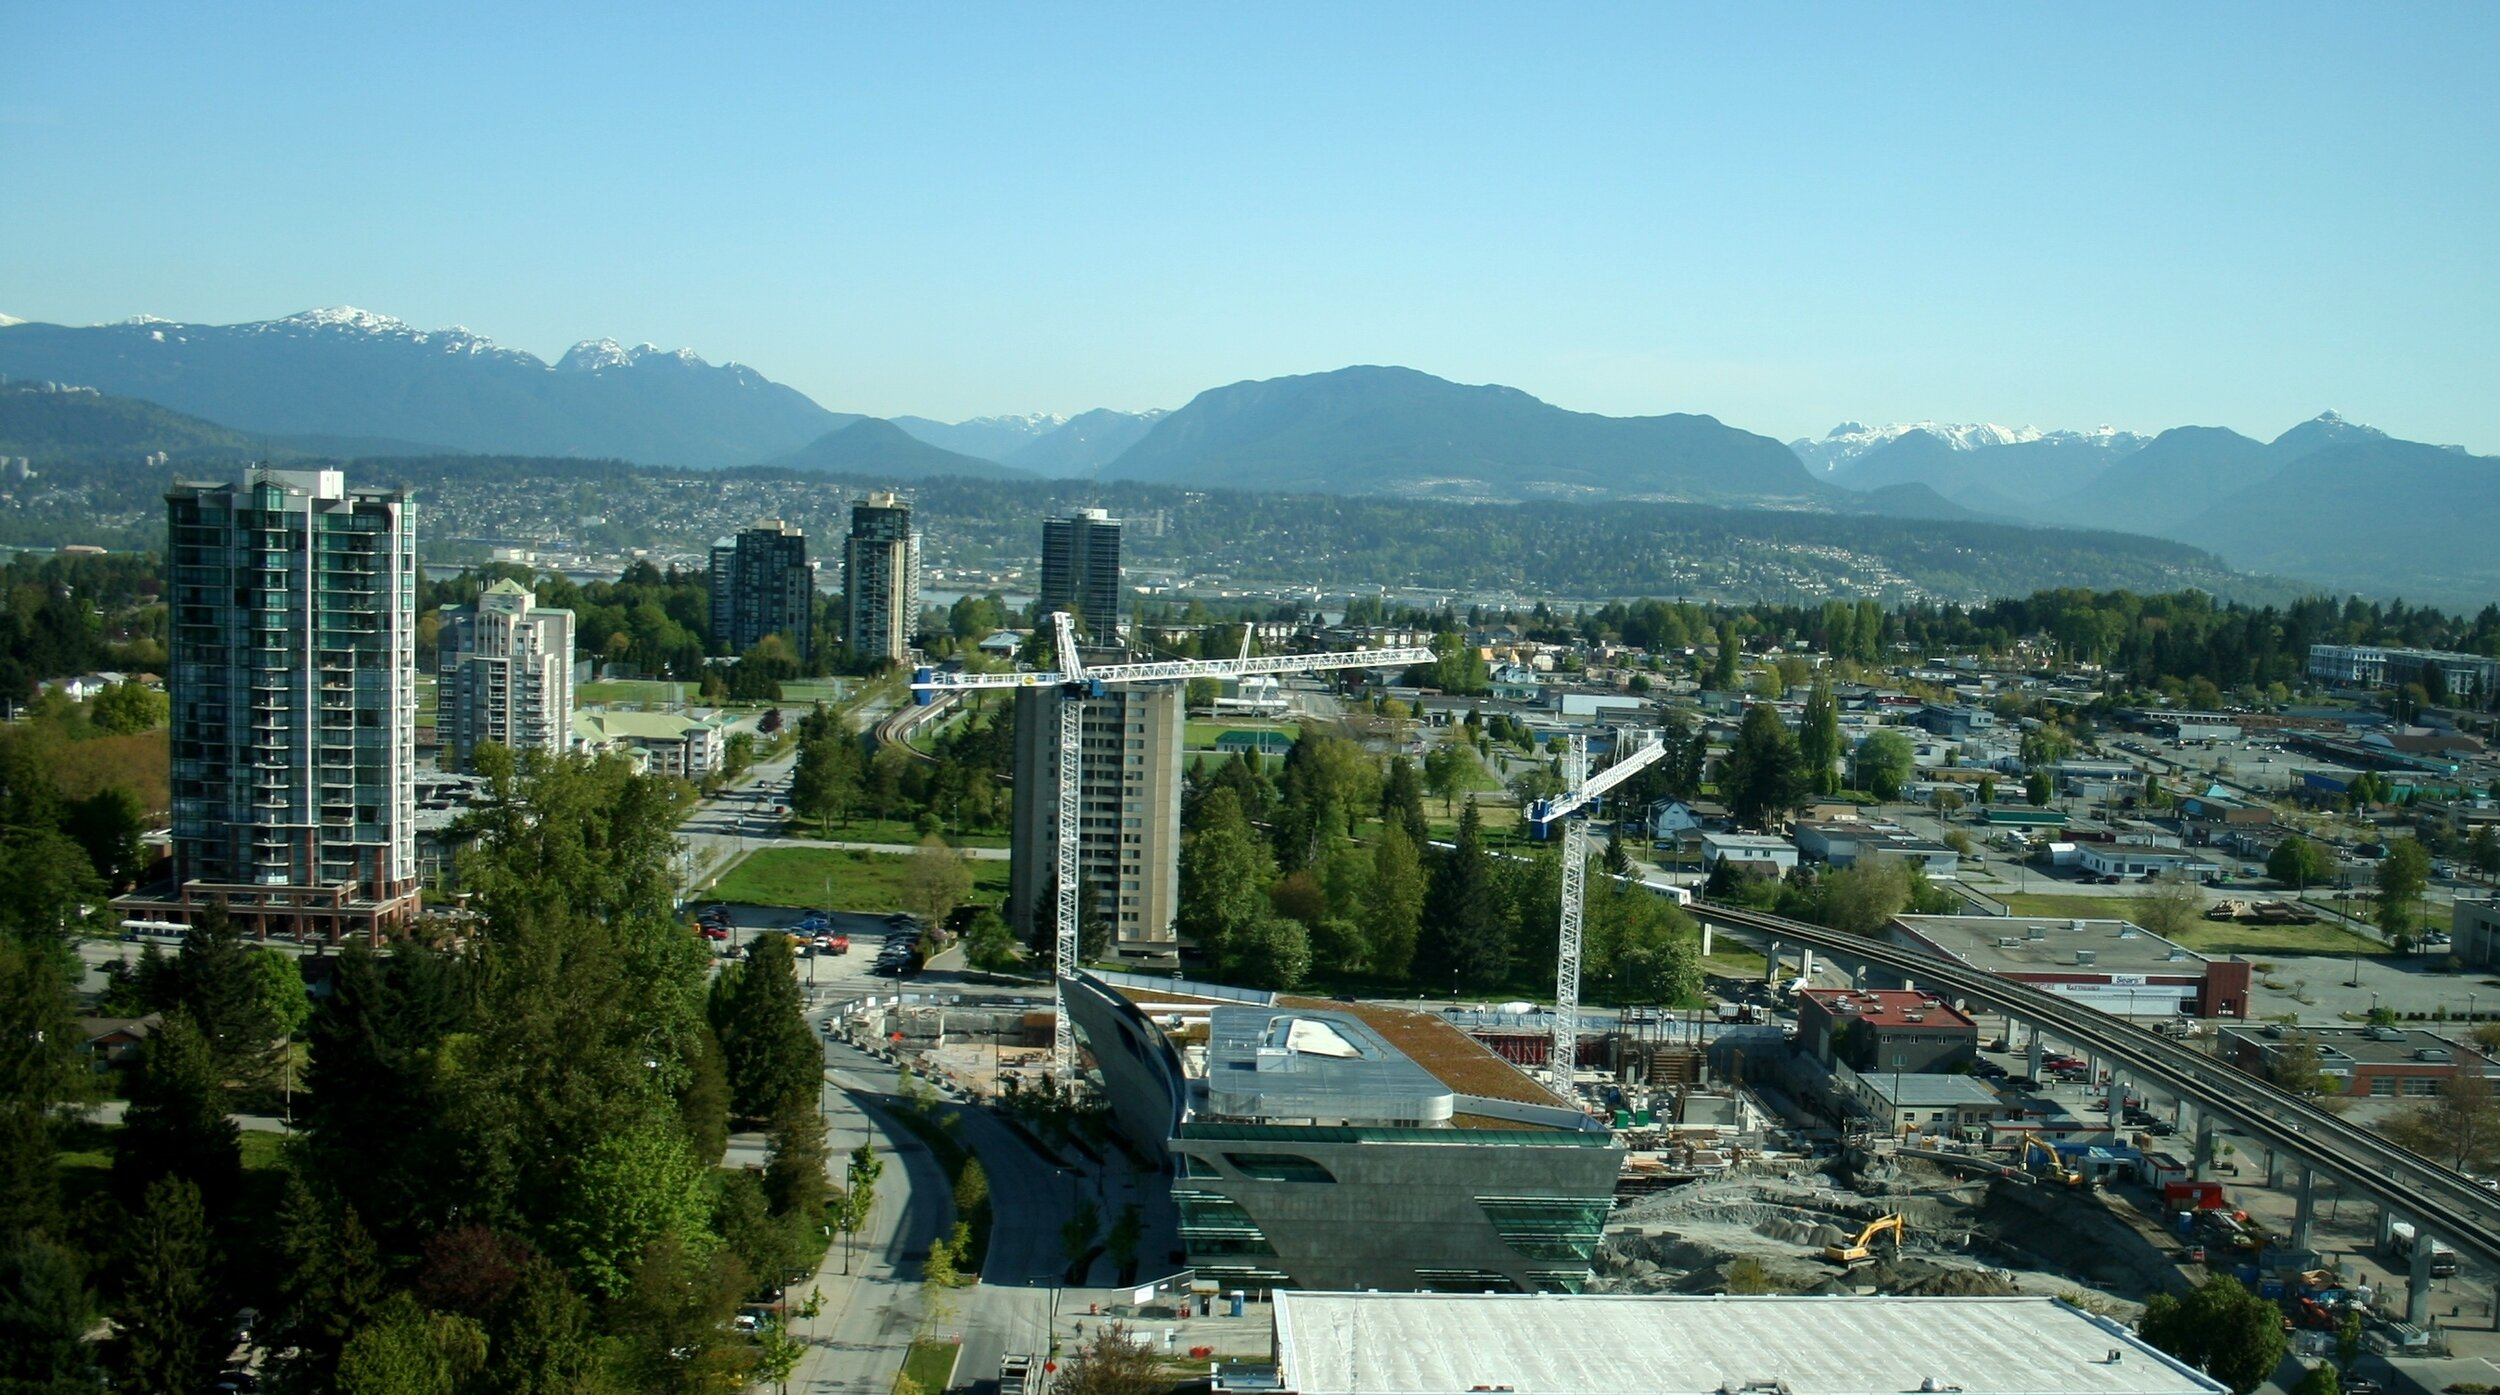 """""""Spiky"""" transit-oriented development rises amid low-rise suburbia, outside Vancouver, BC. (Source: Wikimedia Commons)"""